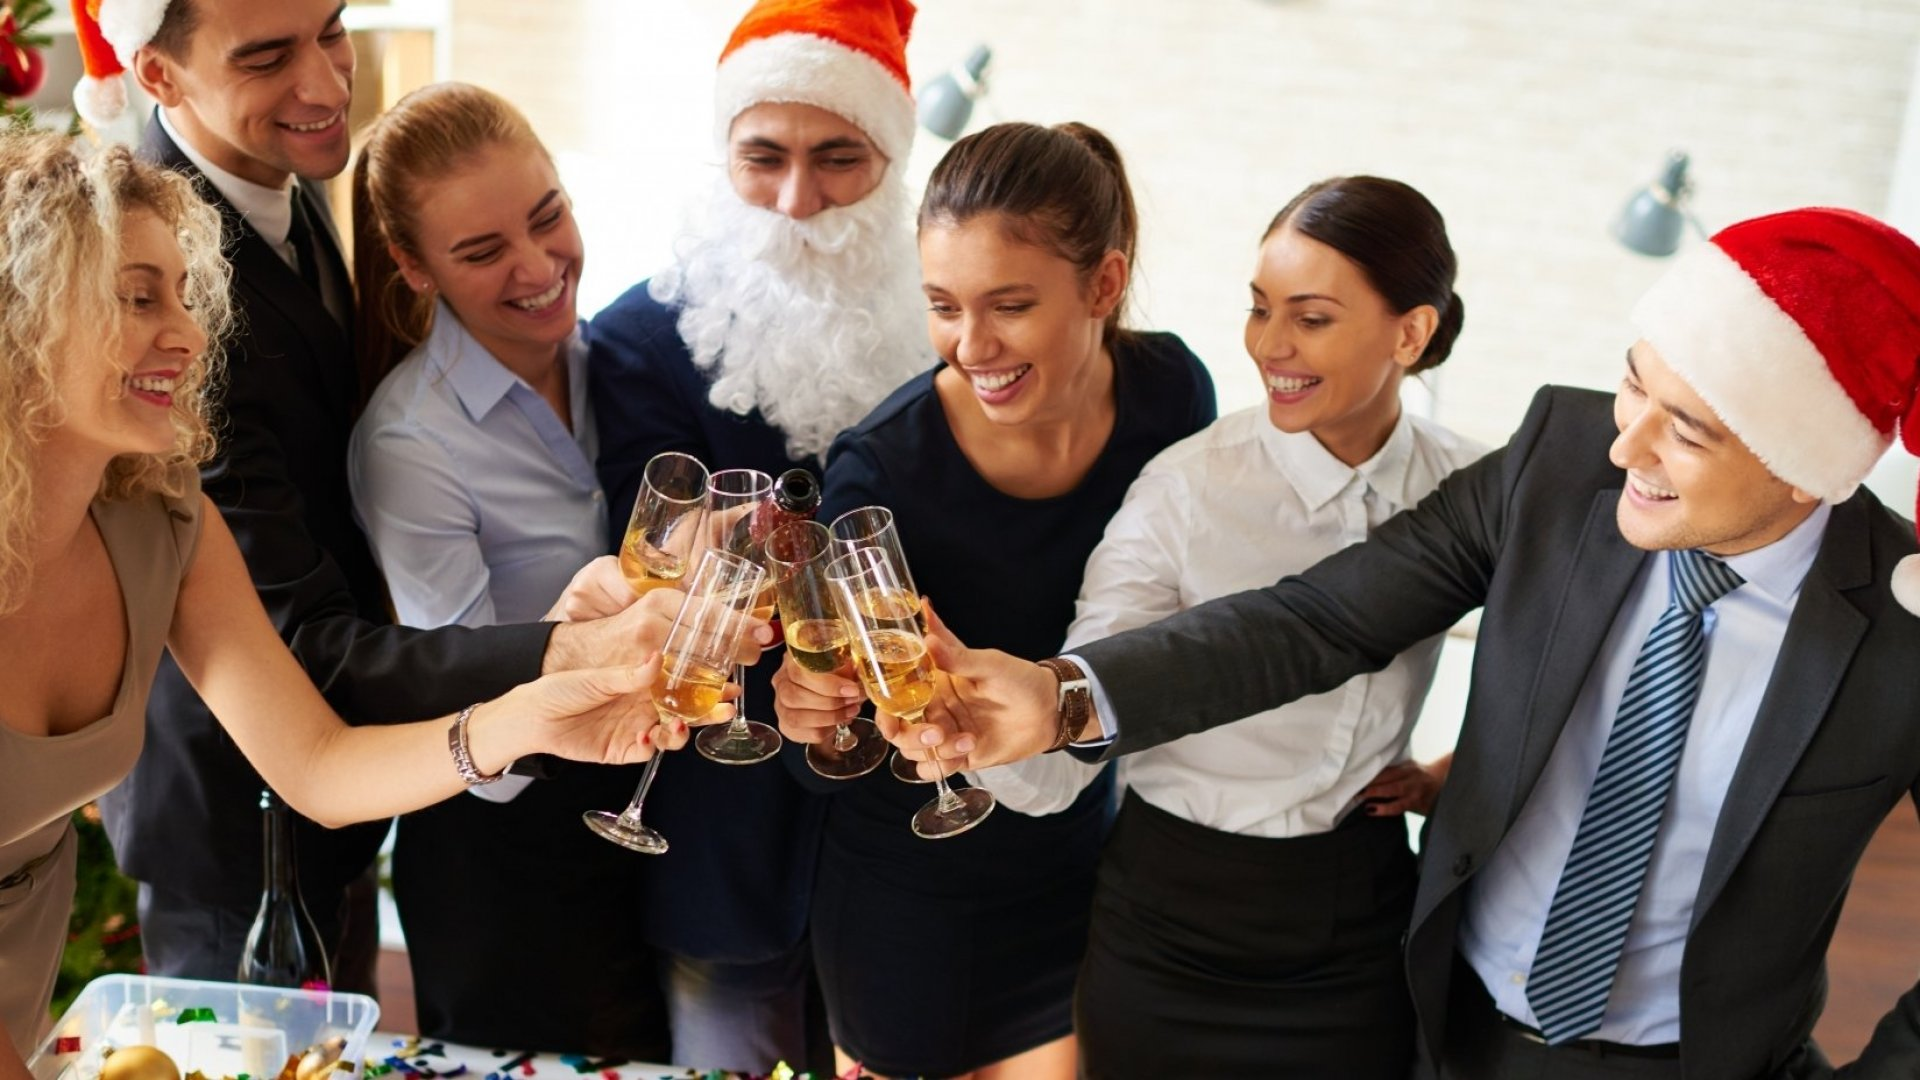 How to Throw an Office Party That Builds Your Team